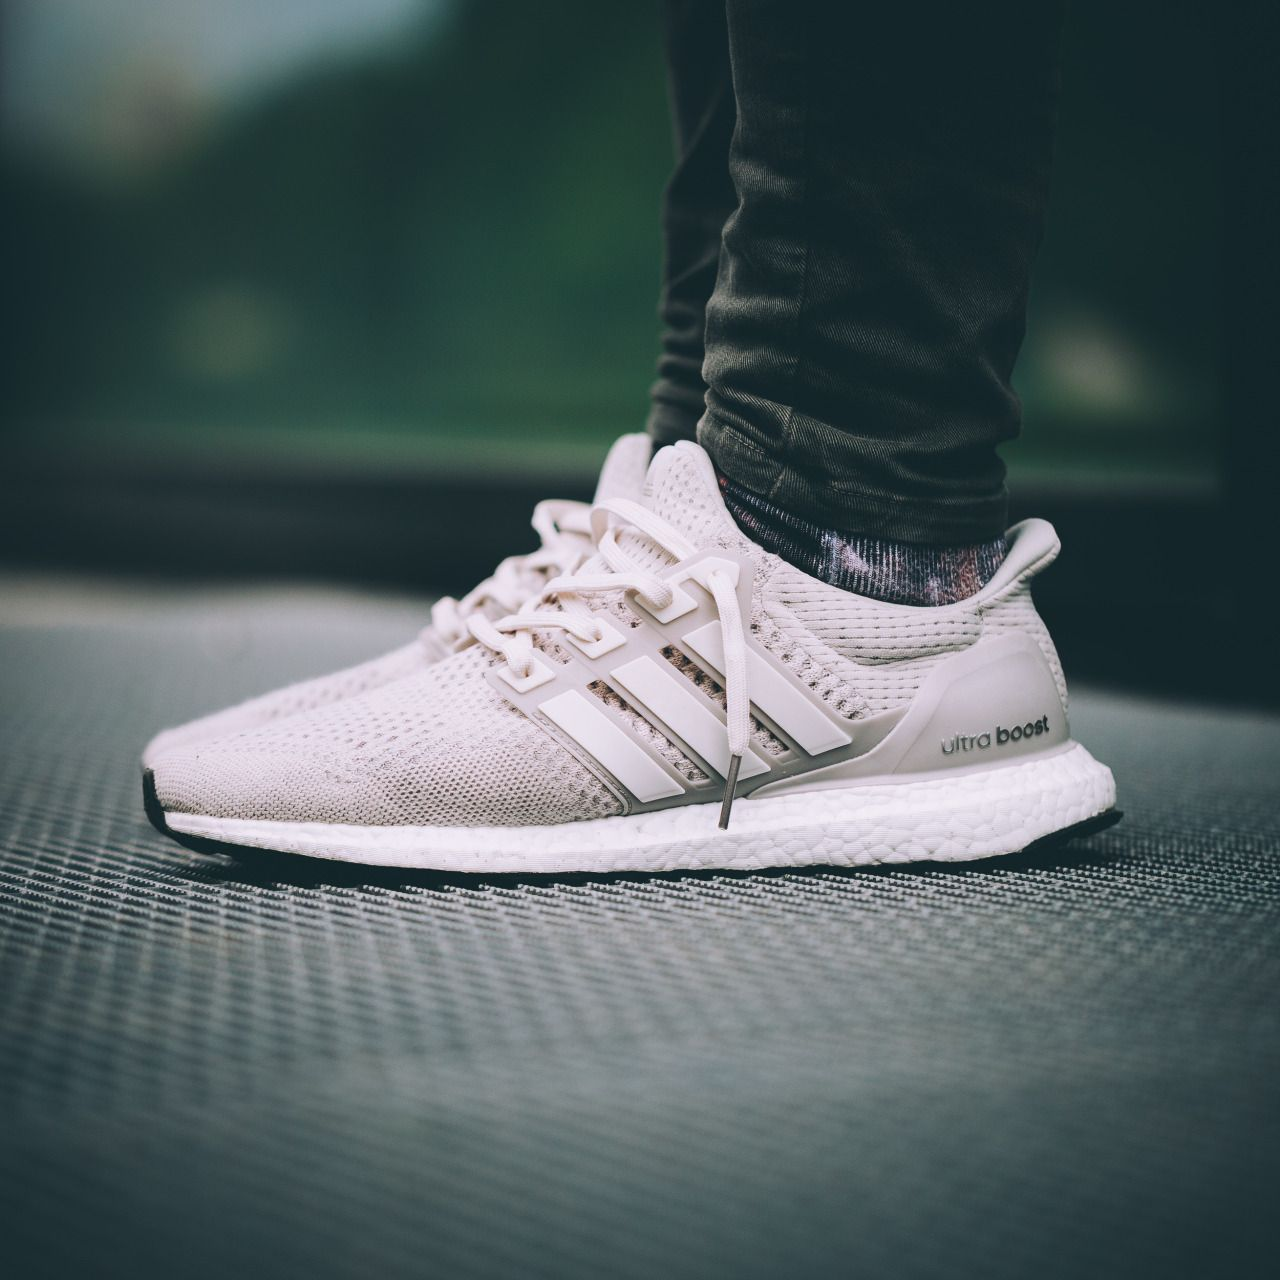 info for 110a8 86dce Adidas Ultra Boost LTD - Cream - 2016